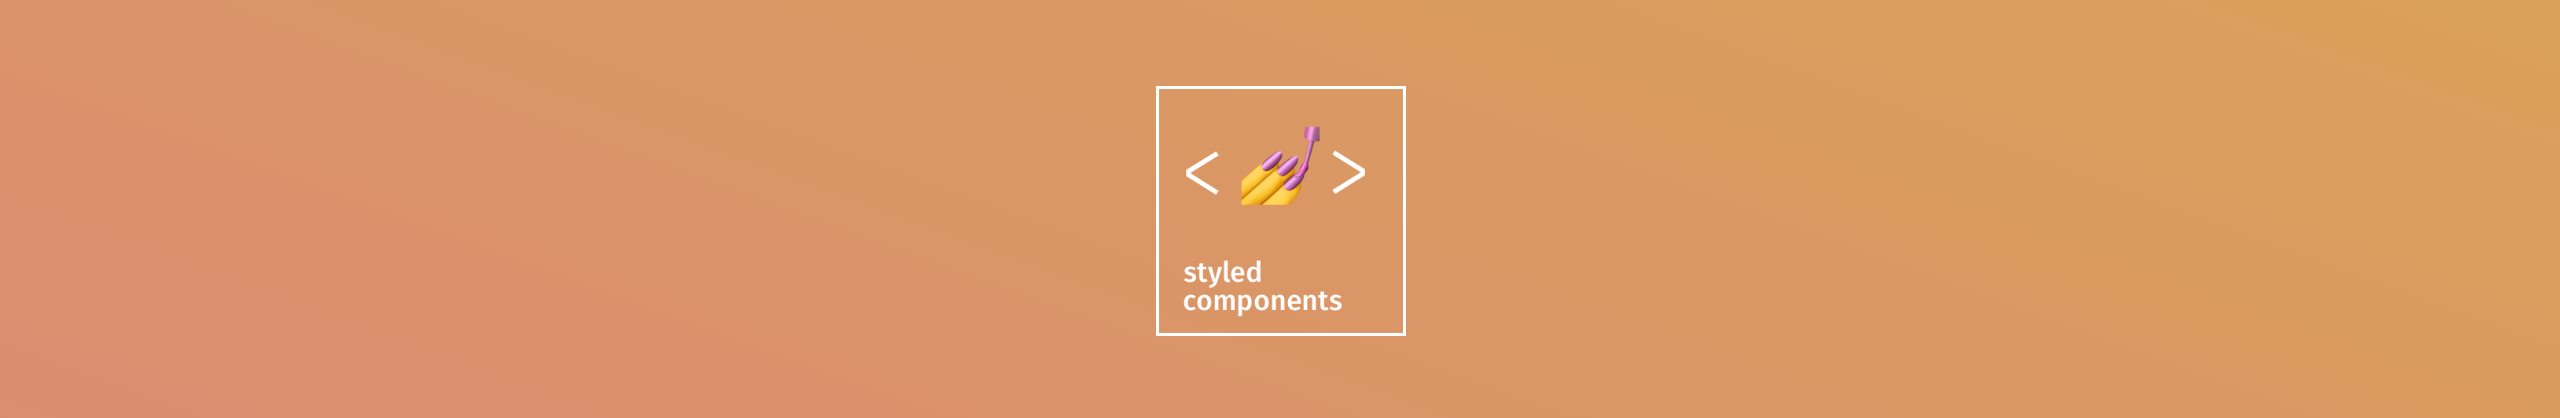 Image for Styling in React with styled-components